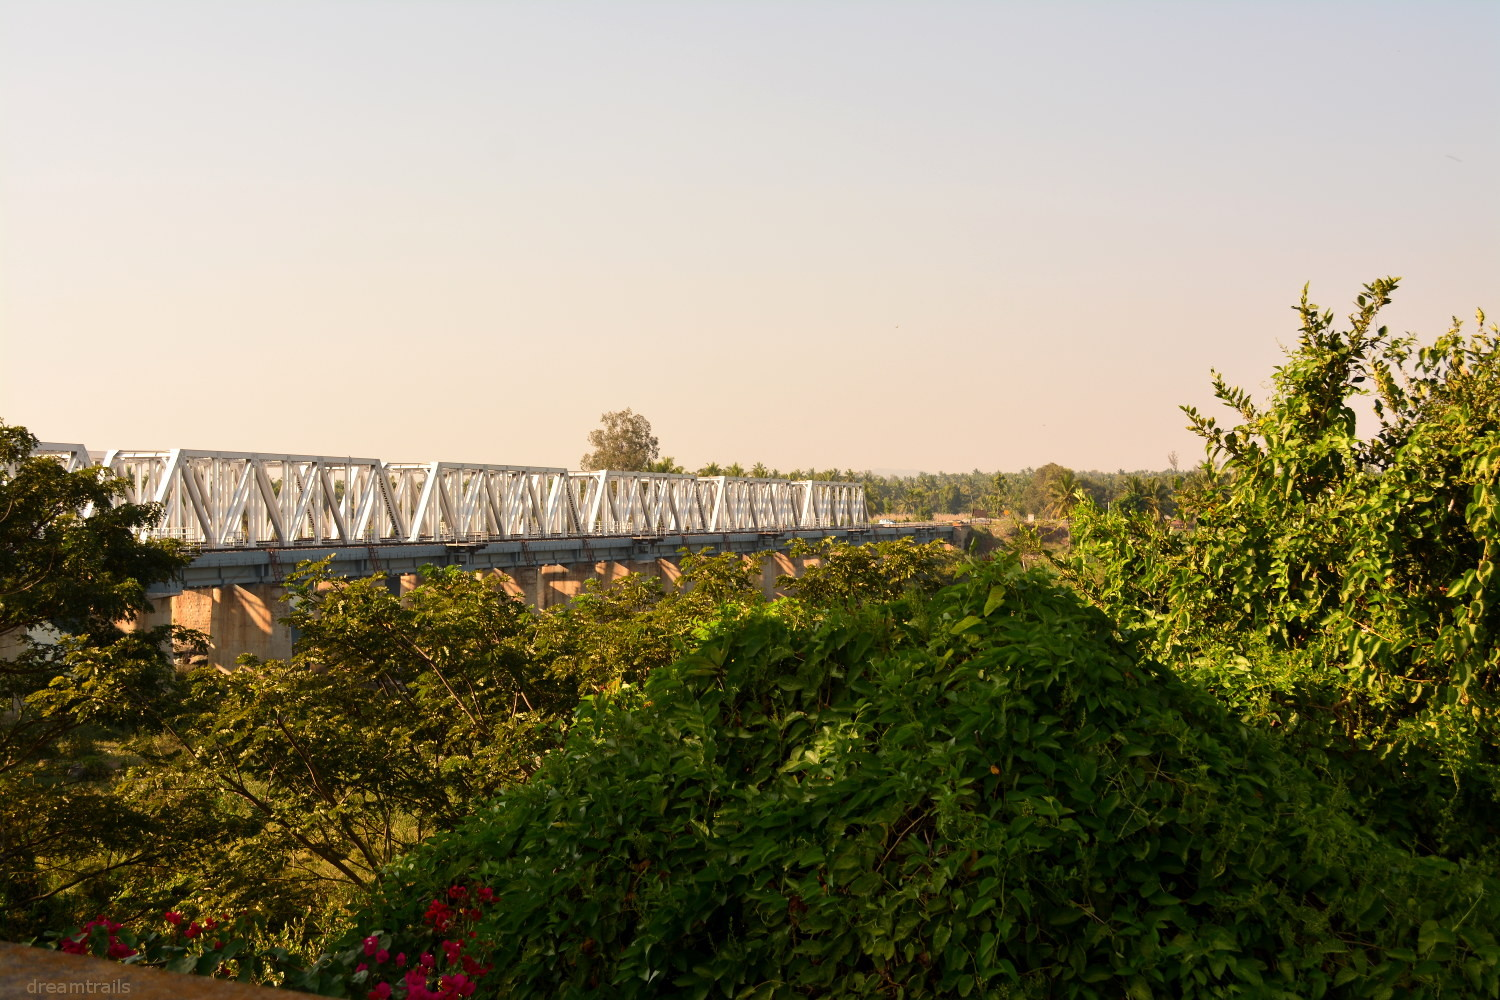 Railway Bridge, Srirangapatna, Karnataka, India